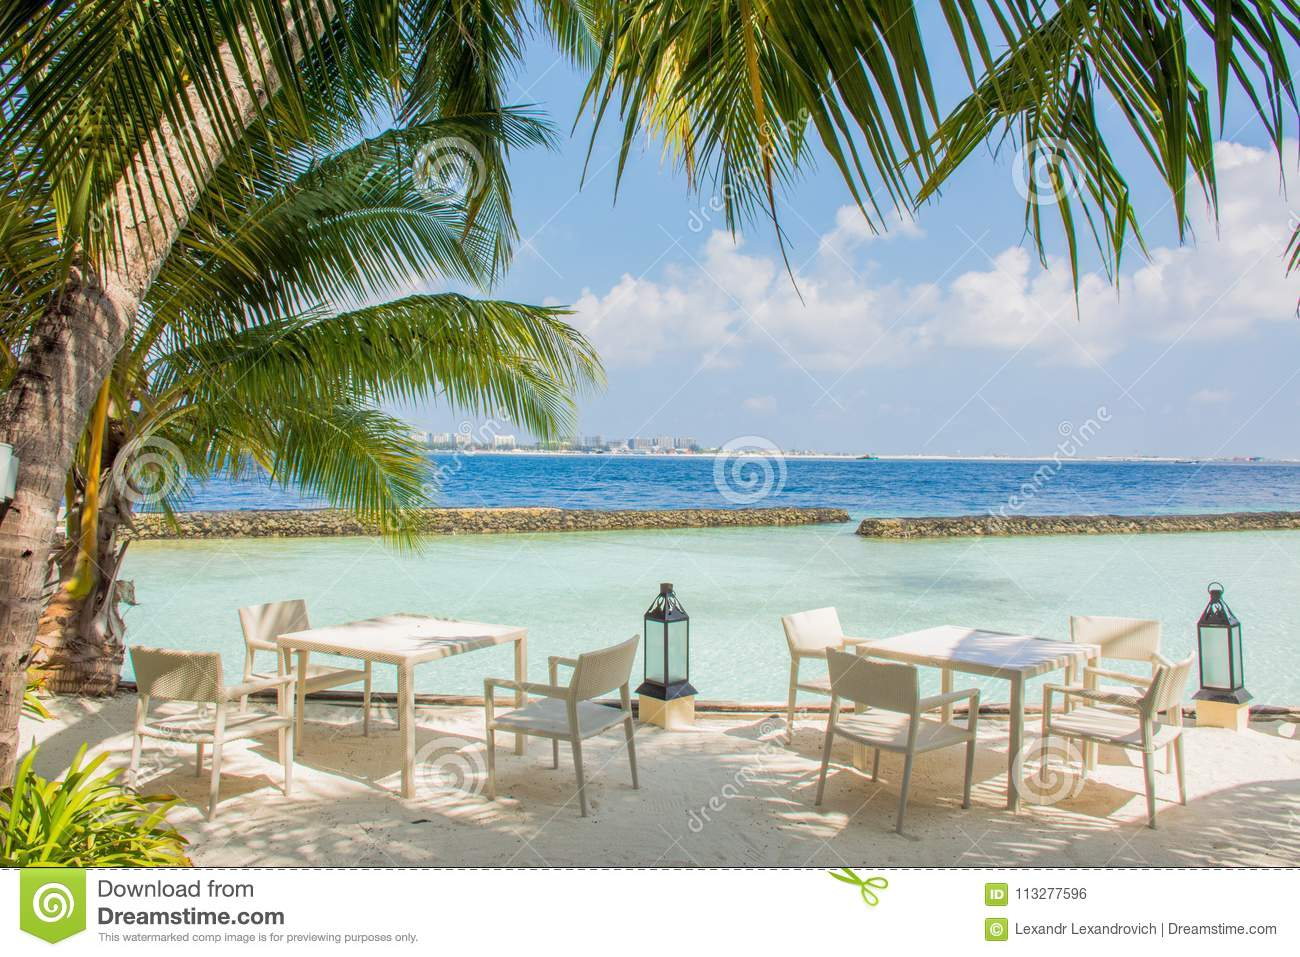 Tables And Chairs In The Luxury Outdoor Restaurant At The Tropical Island Stock Photo Image Of Luxury Trees 113277596